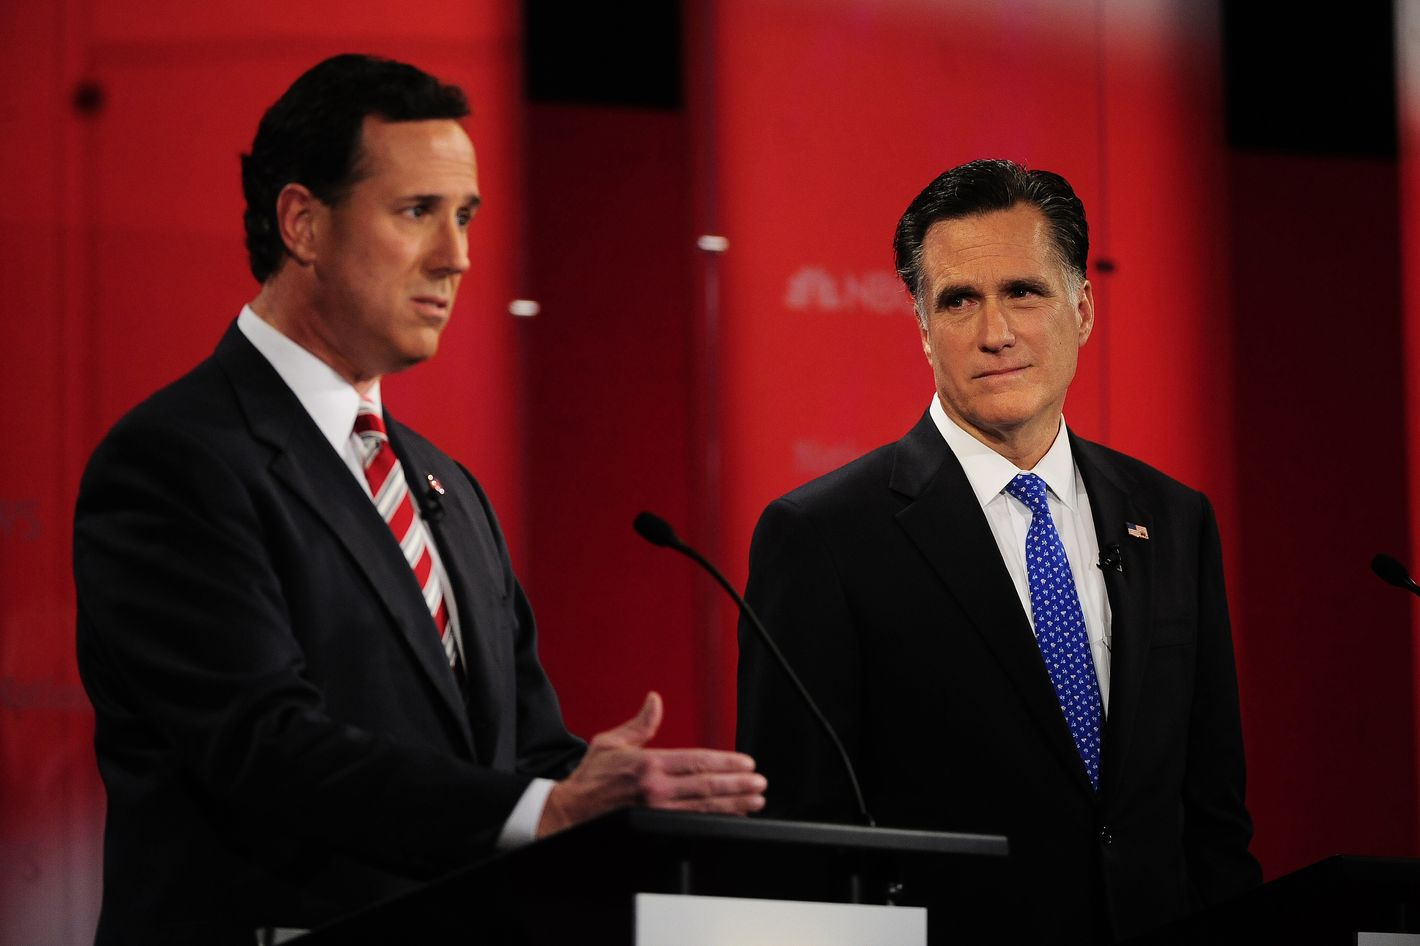 Republican presidential hopefuls Rick Santorum and Mitt Romney take part in The Republican Presidential Debate at University of  South Florida in Tampa, Florida, January 23, 2012